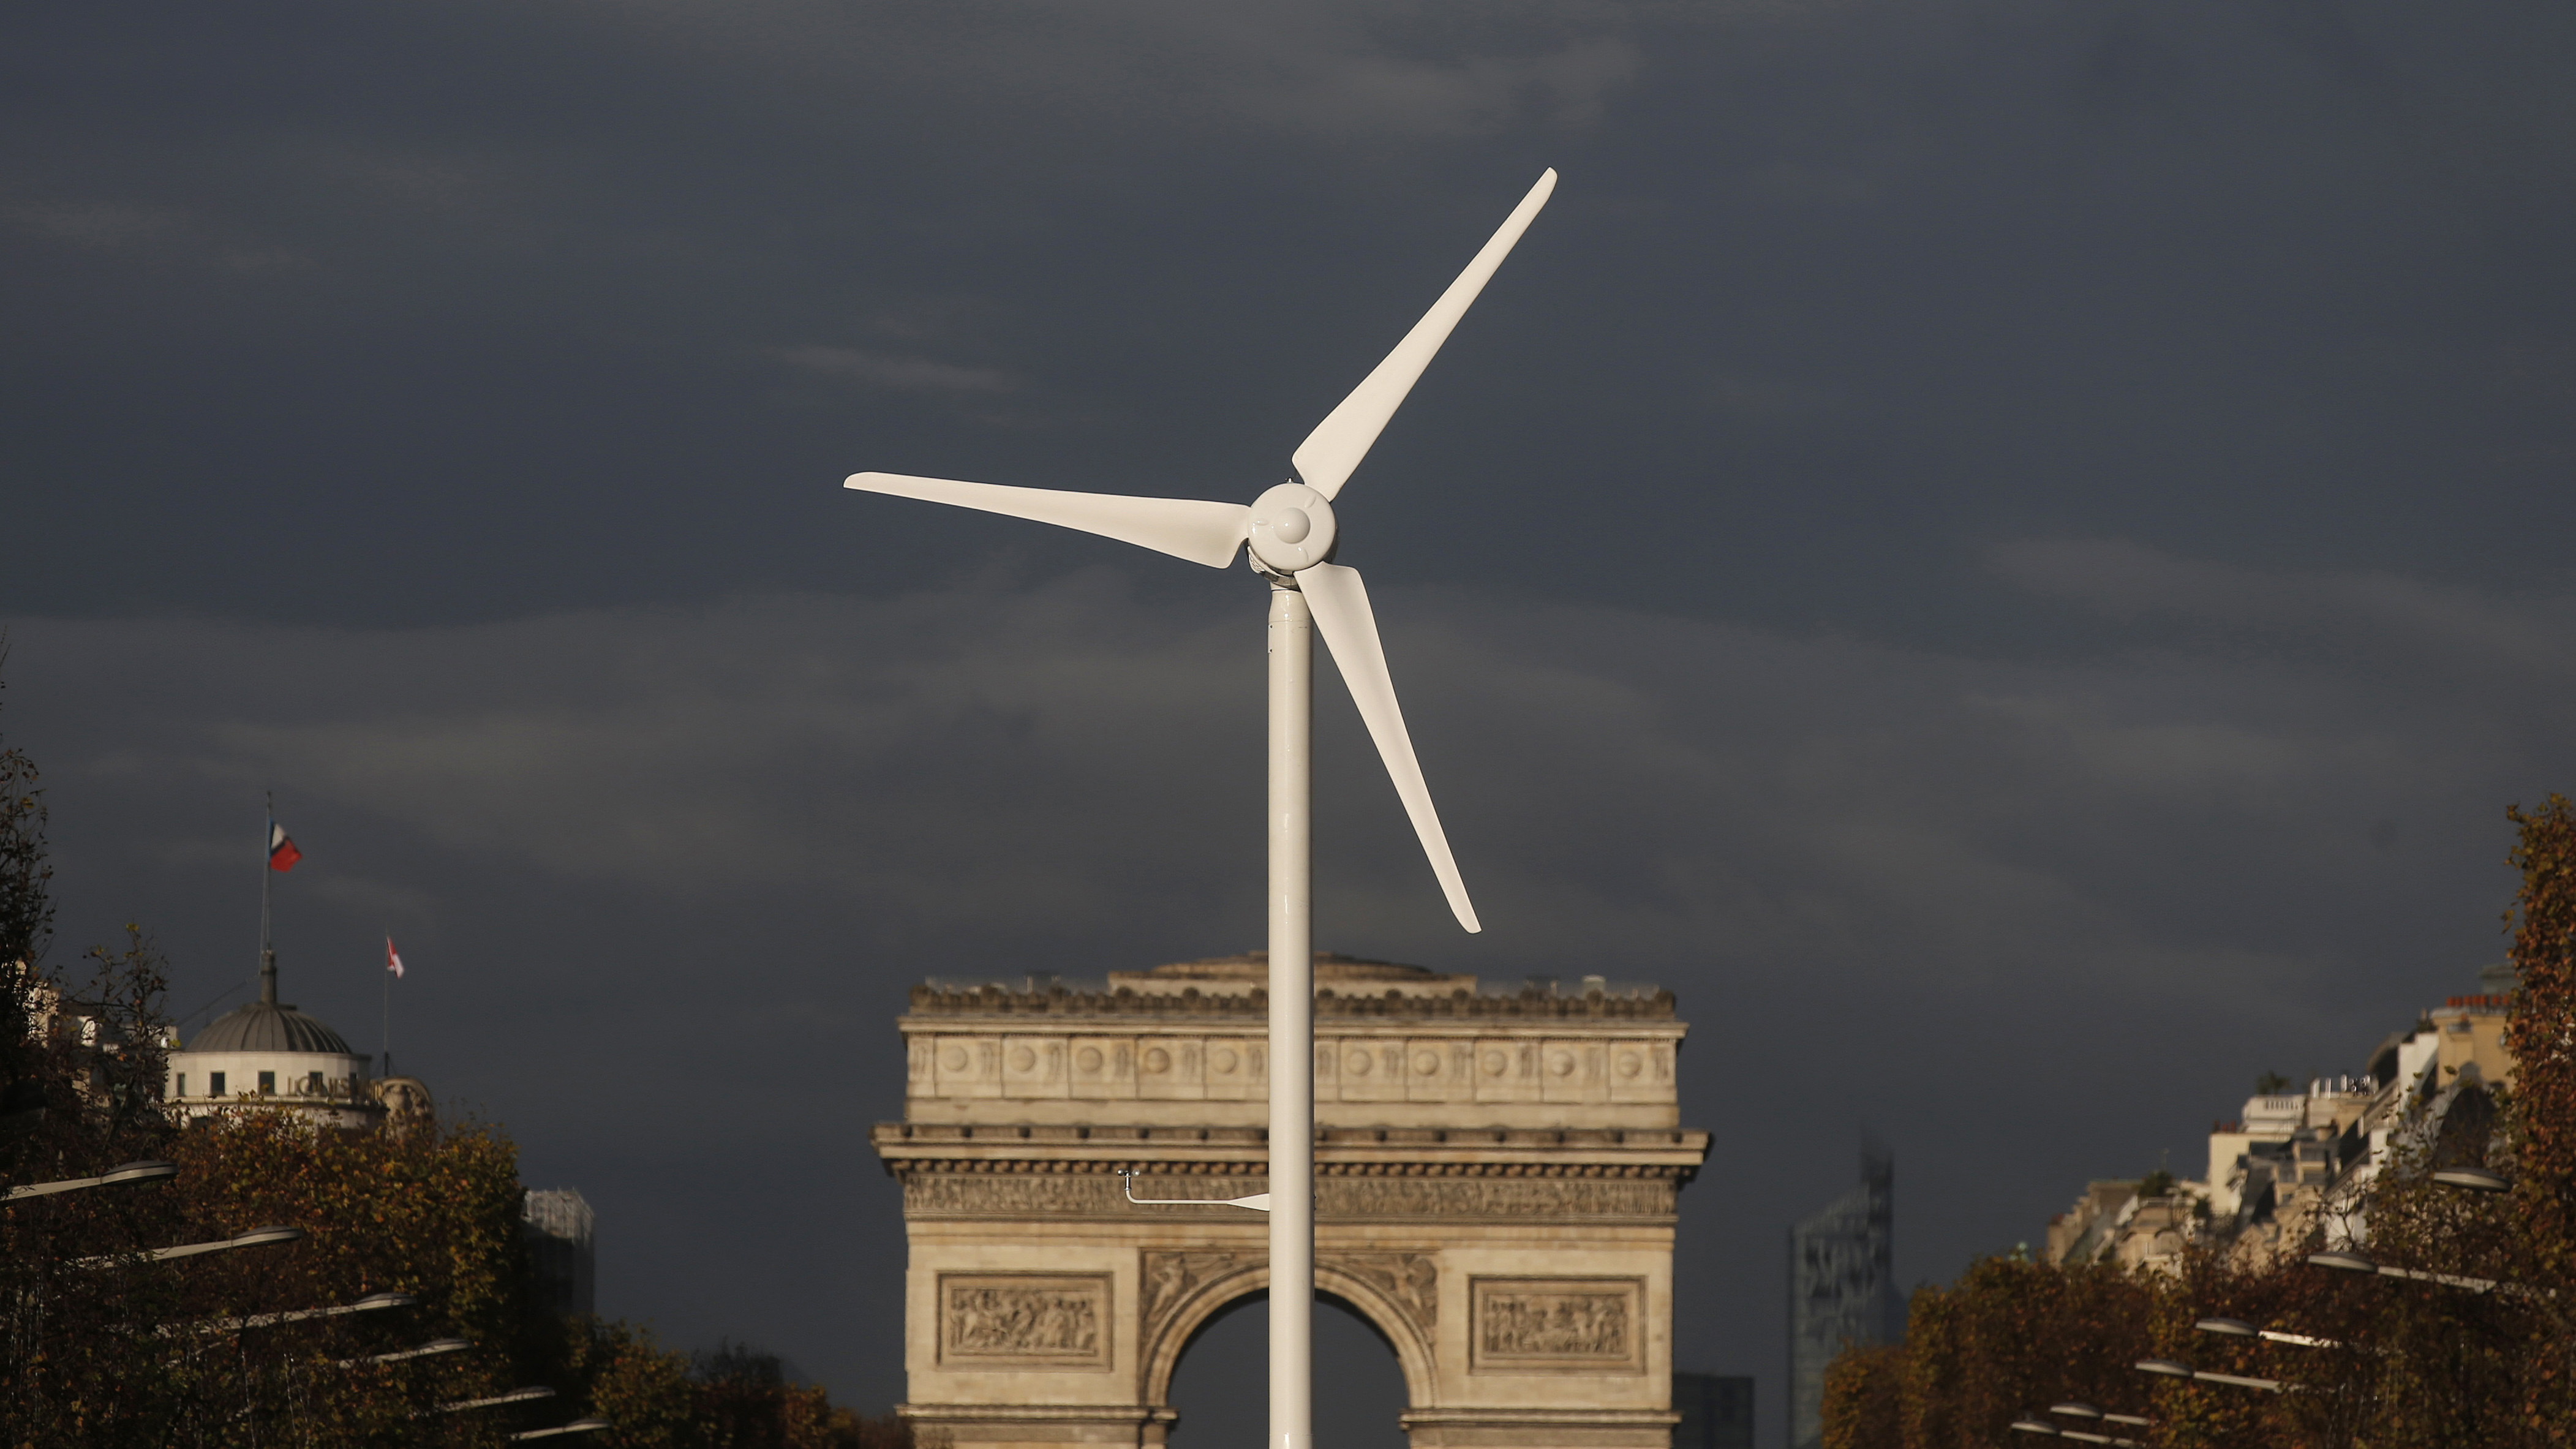 A power-generating windmill turbine is seen in front of the Arc de Triomphe on the Champs Elysees avenue ahead of the COP21 World Climate Summit in Paris